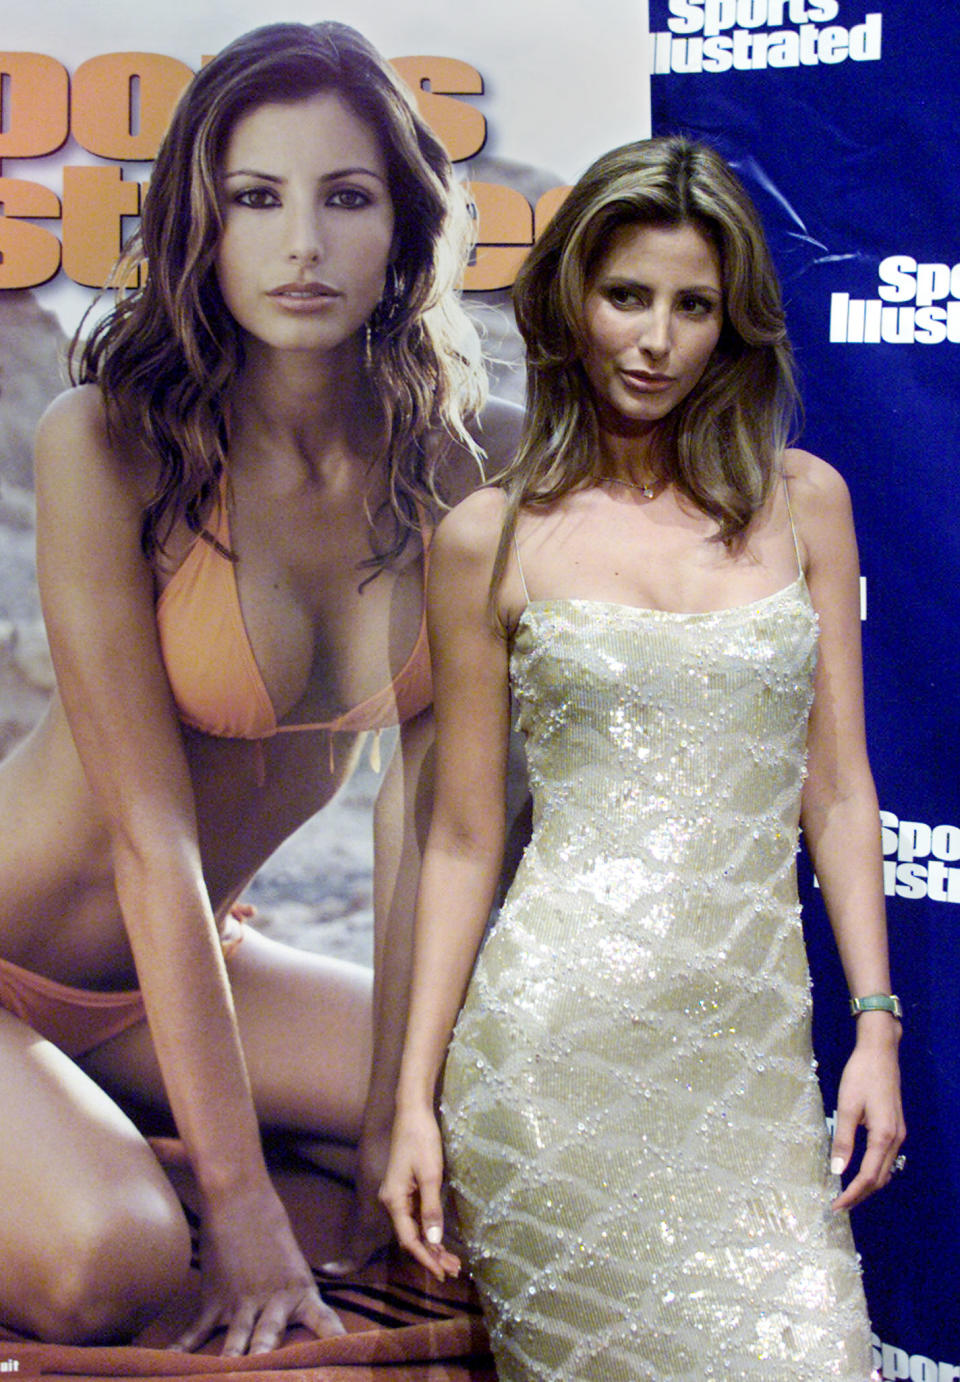 Model Elsa Benitez poses next to an enlarged version of the cover of the 2001 Sports Illustrated swimsuit issue featuring her photo during a photo opportunity in New York on February 20, 2001. Benitez, a native of Hermosillo in the Sonoran Mountains of Mexico, was photographed for the cover in Tunisia. Sports Illustrated says the issue will reach 56 million adults in the United States after it hits newsstands on February 21.  PM